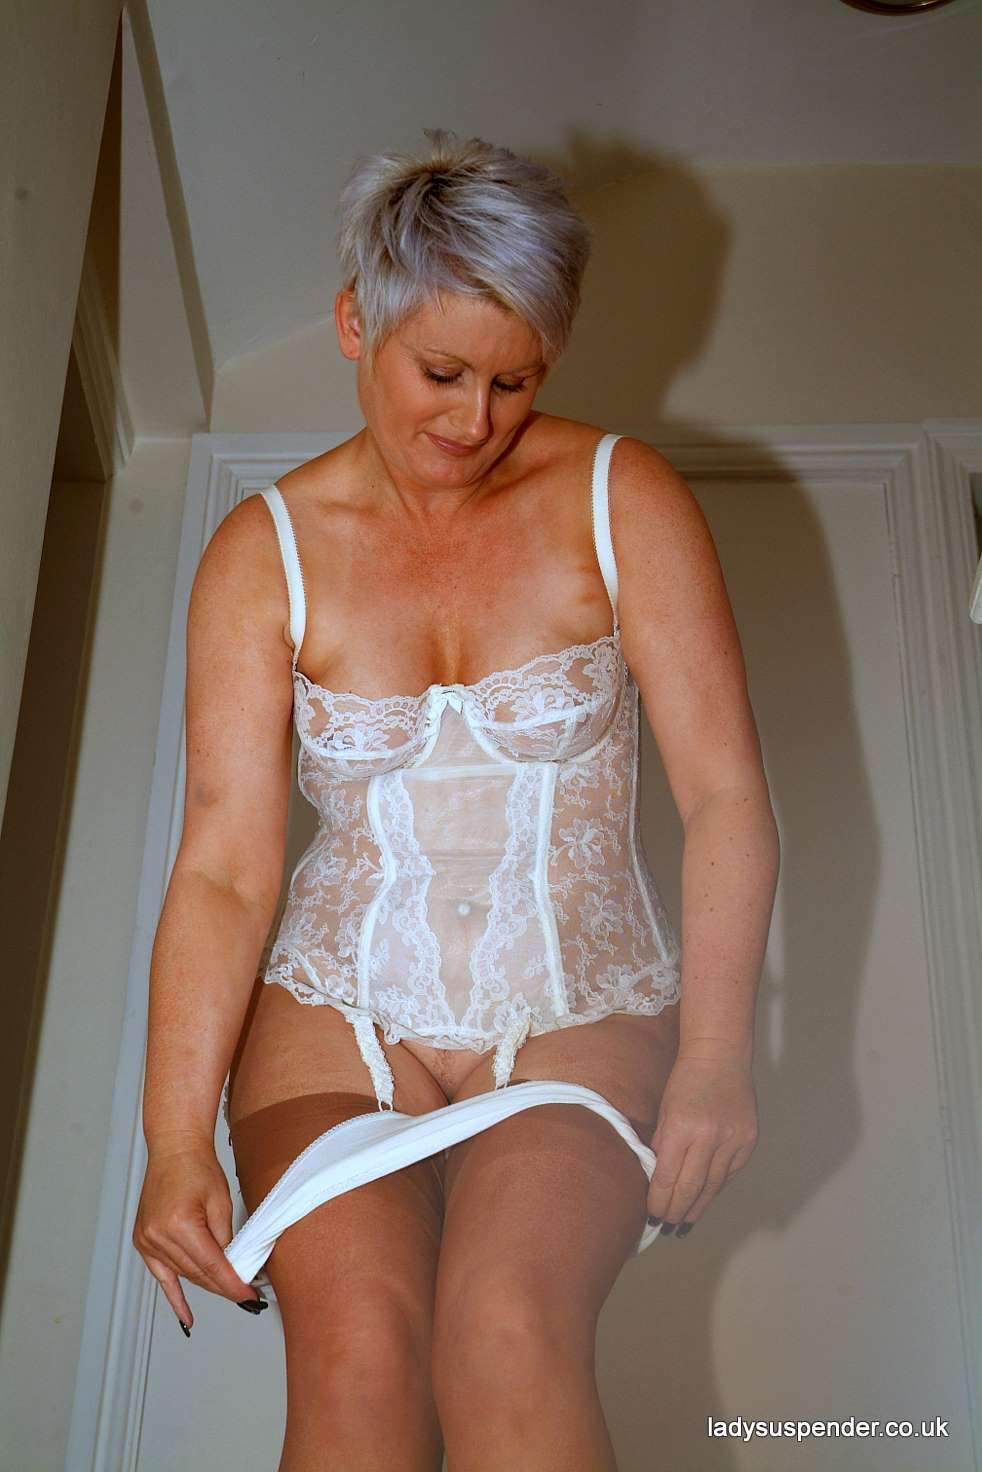 Mature women in girdles and stockings